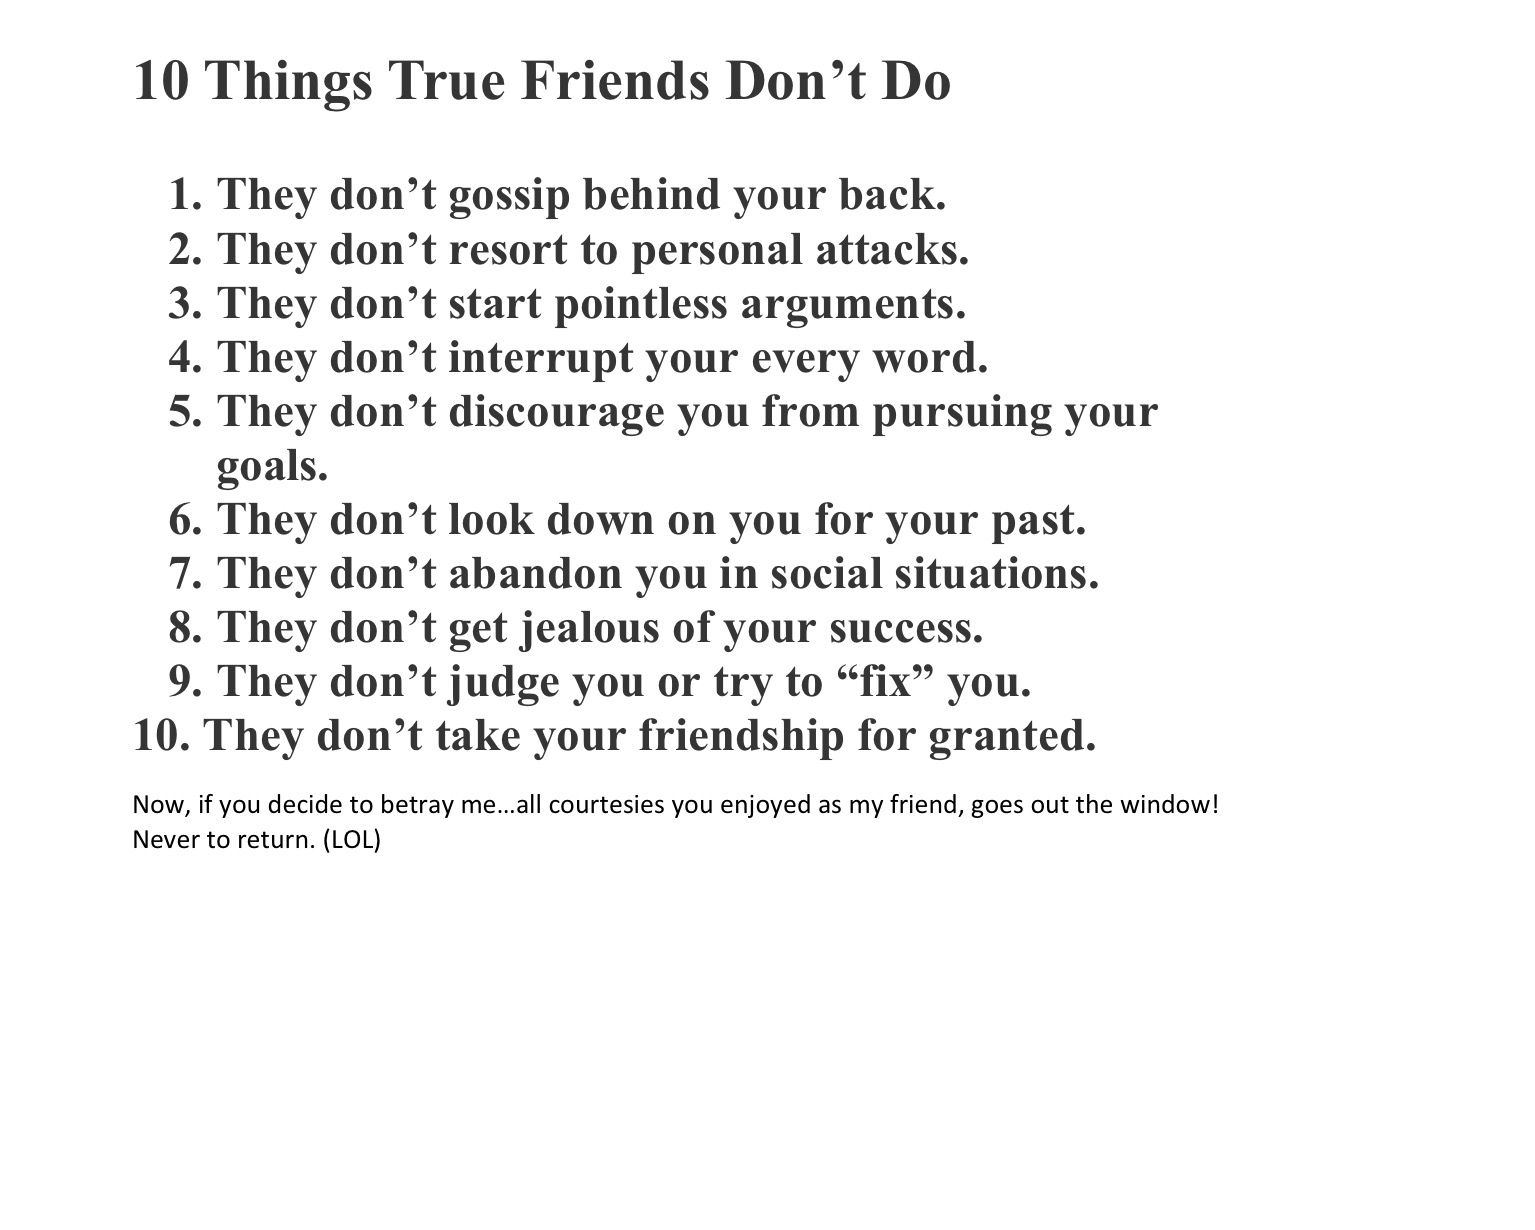 10 Things (True) Friends Don't Do